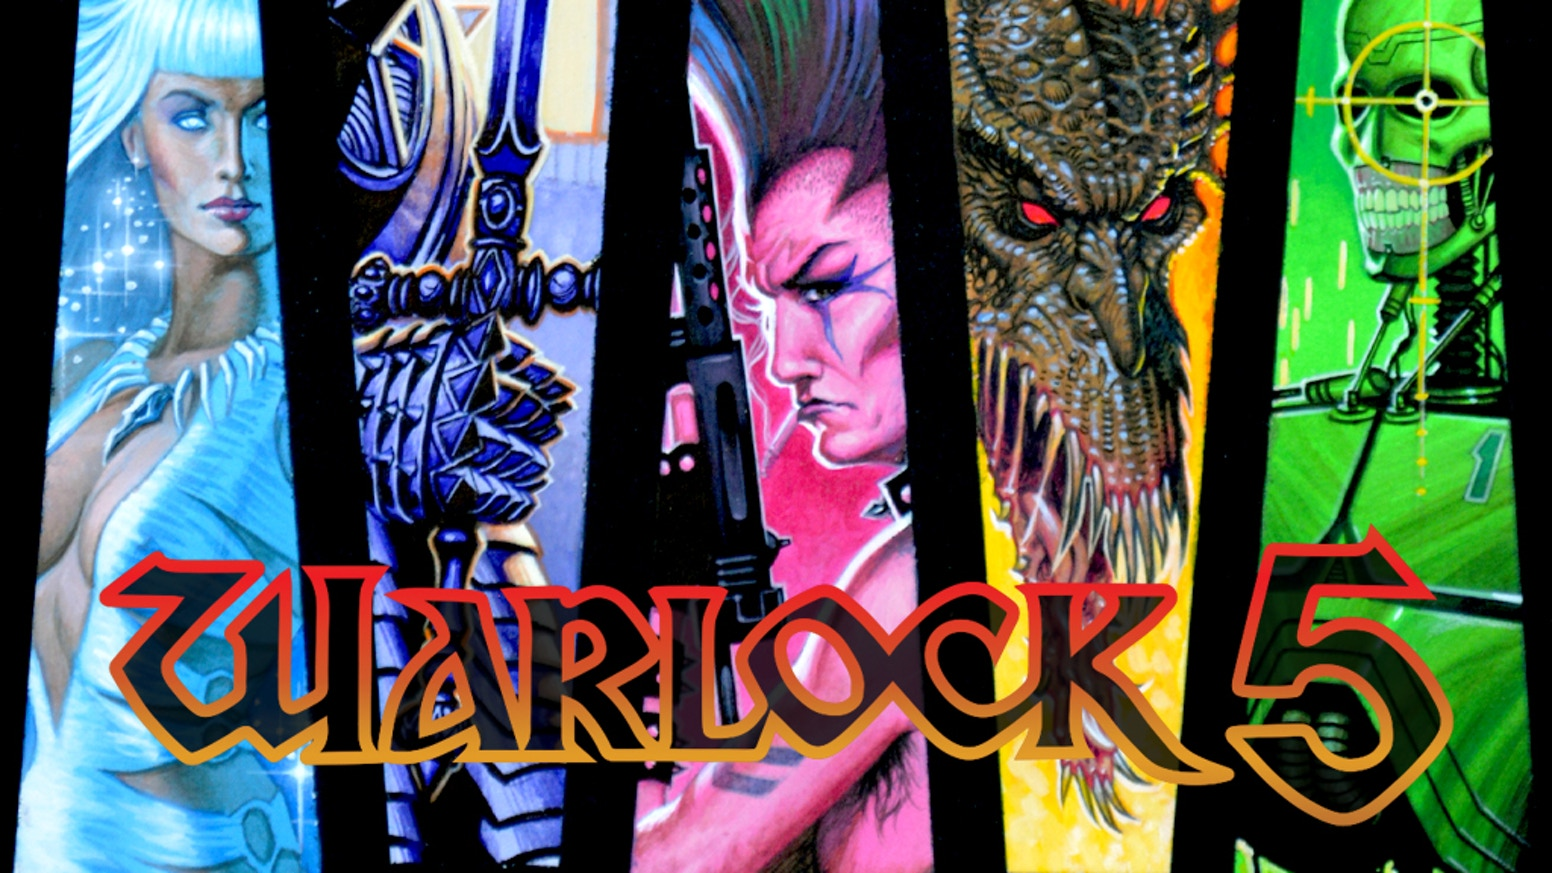 A collected omnibus of the original Warlock 5 comic series from Den Beauvais and Gordon Derry + THE UNRELEASED ISSUES 14 & 15!